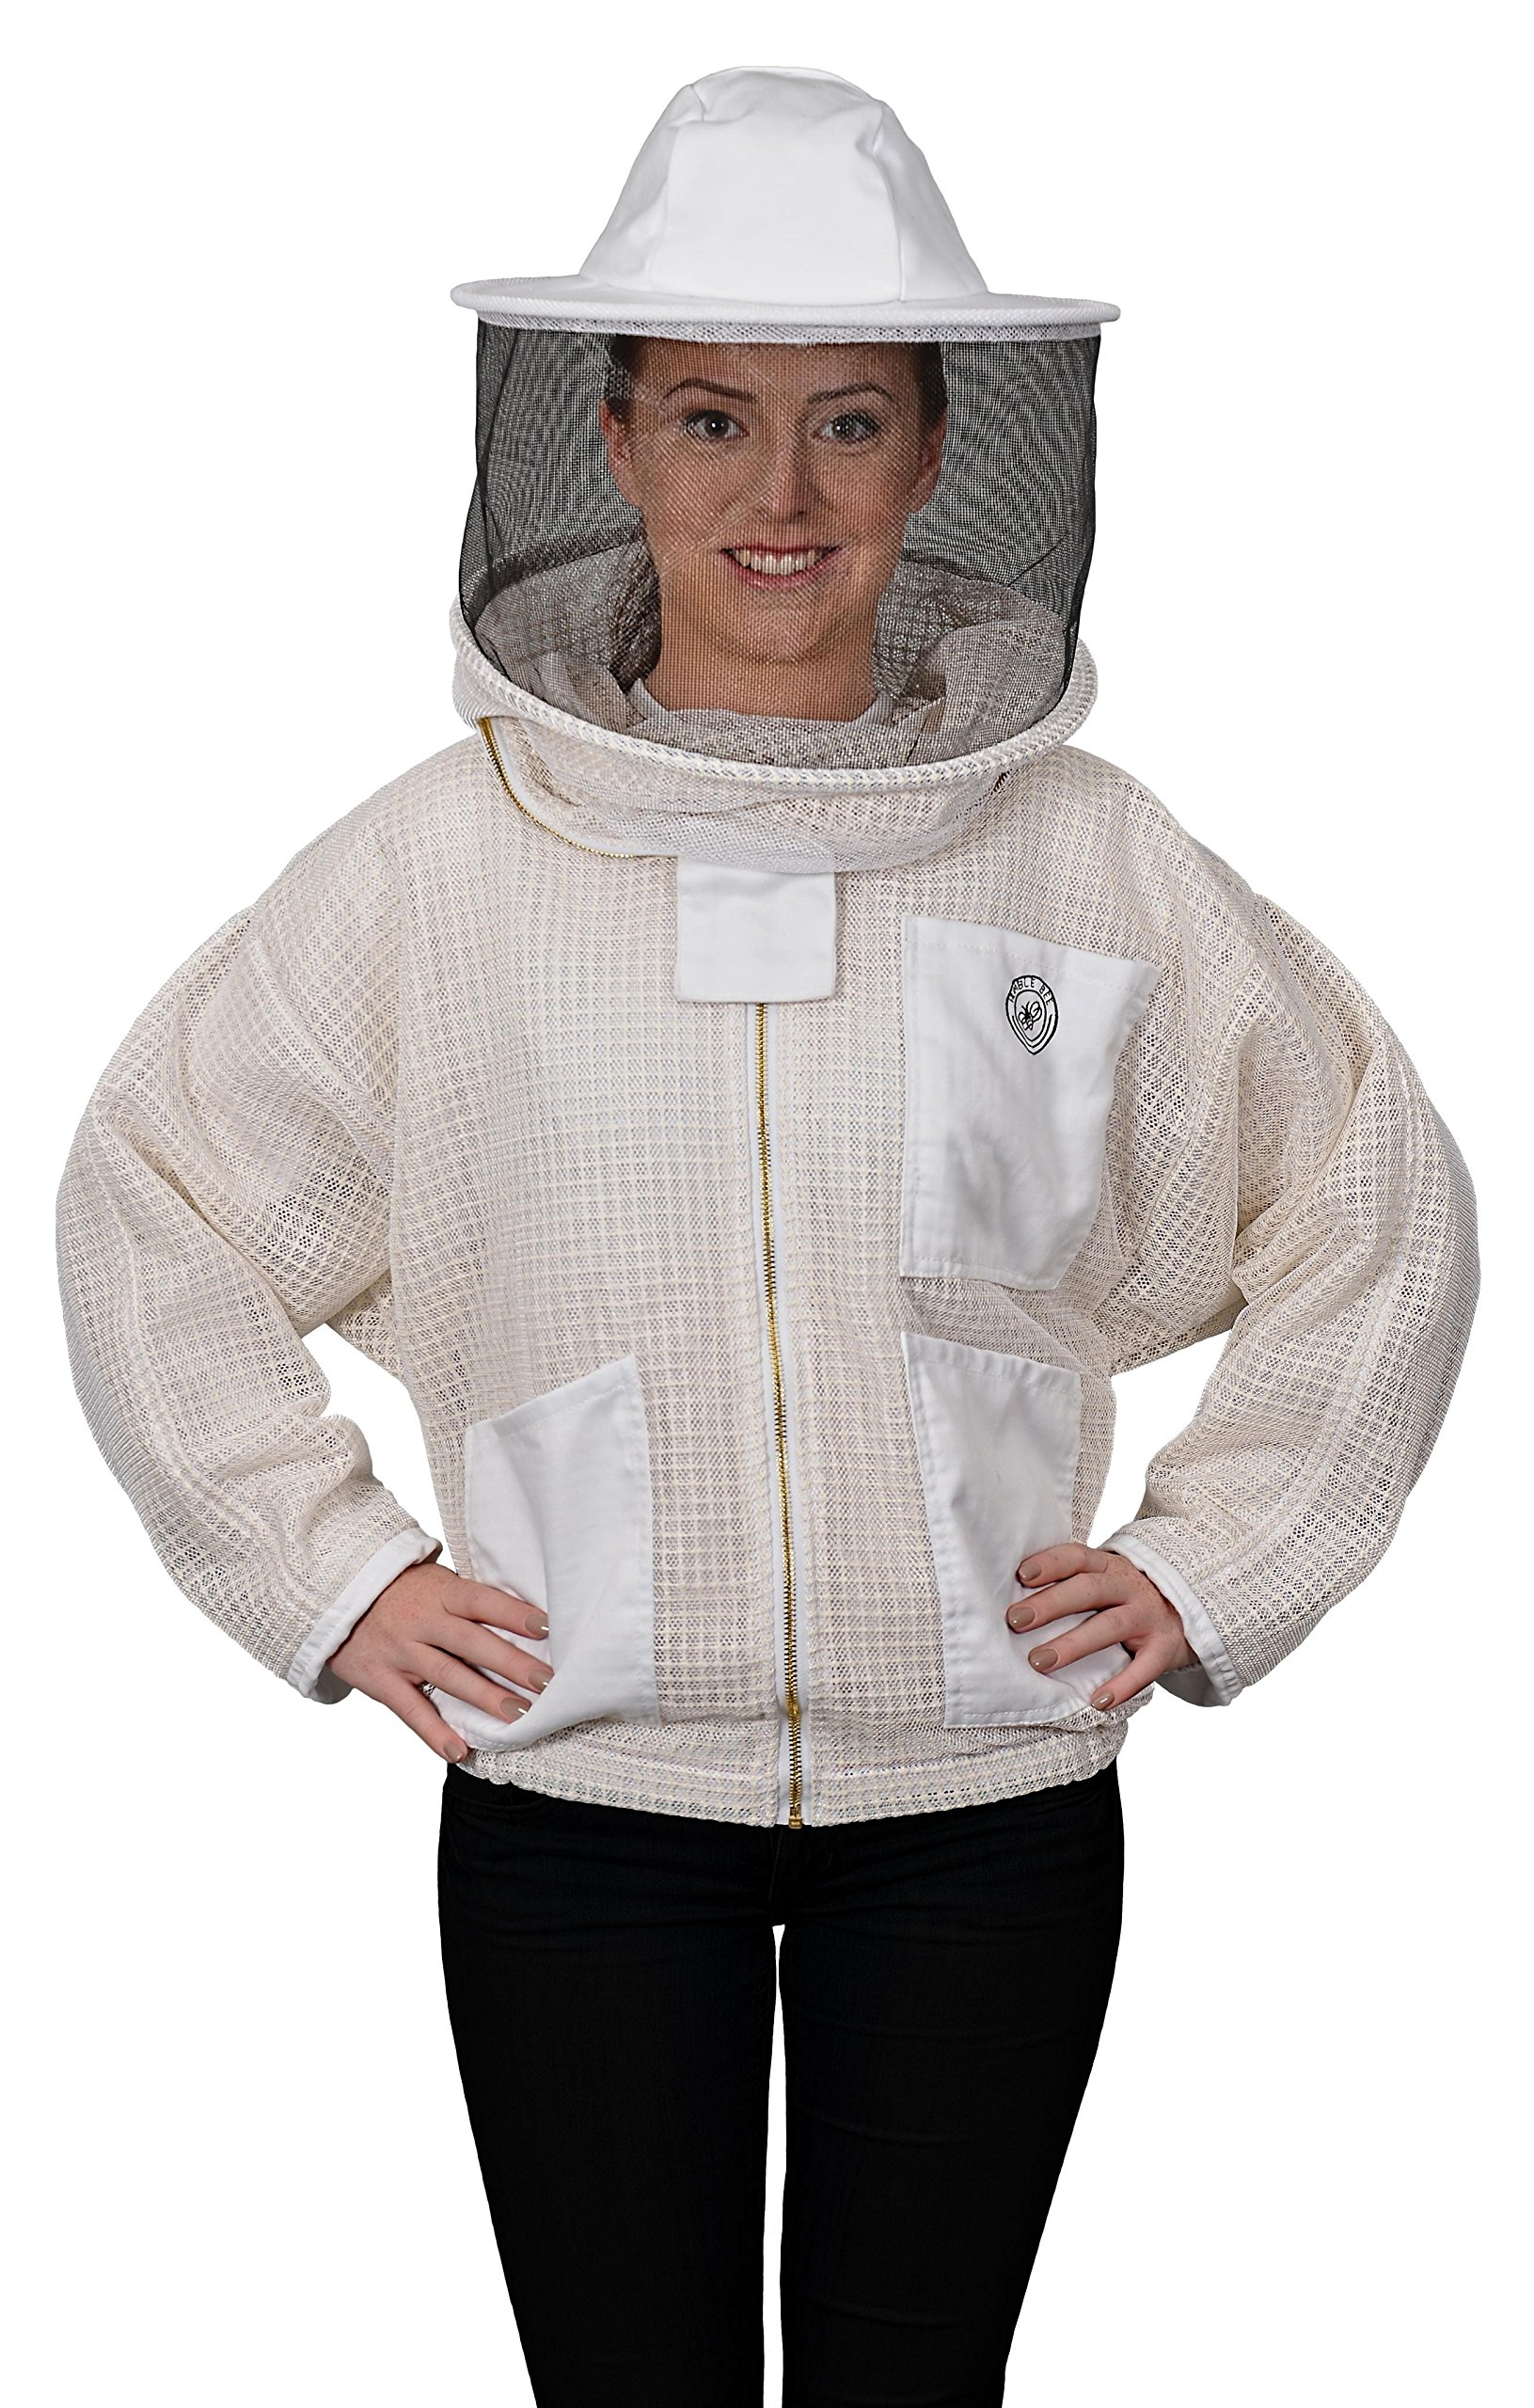 Humble Bee 320-L Aerated Beekeeping Jacket with Round Veil (Large) by Humble Bee